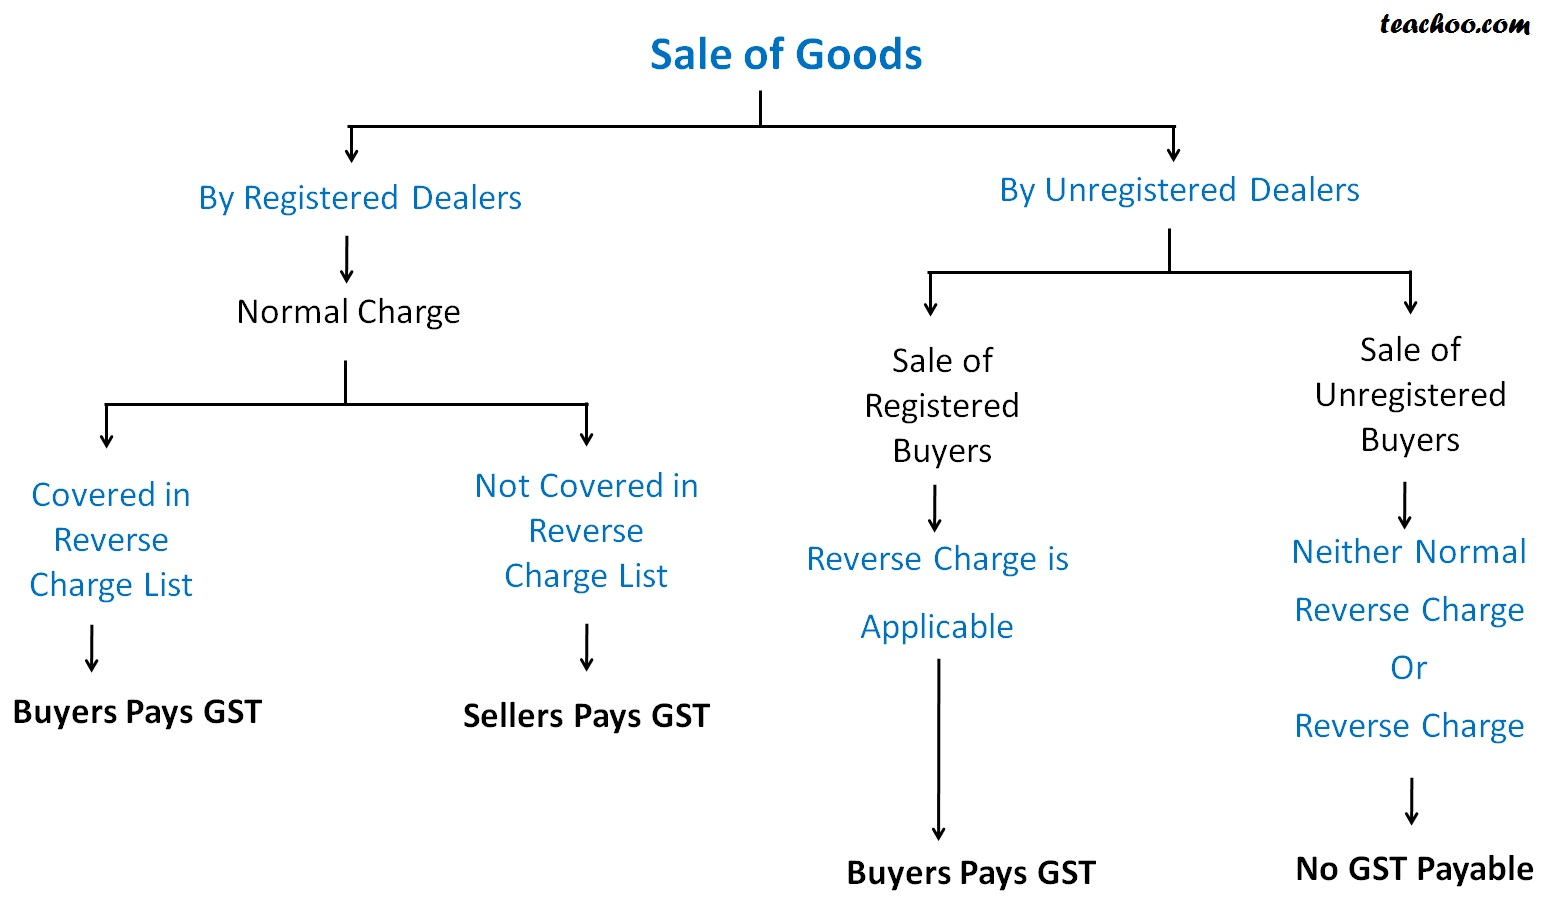 Gst Implication In Case Of Unregistered Dealers Reverse Charge In Gs